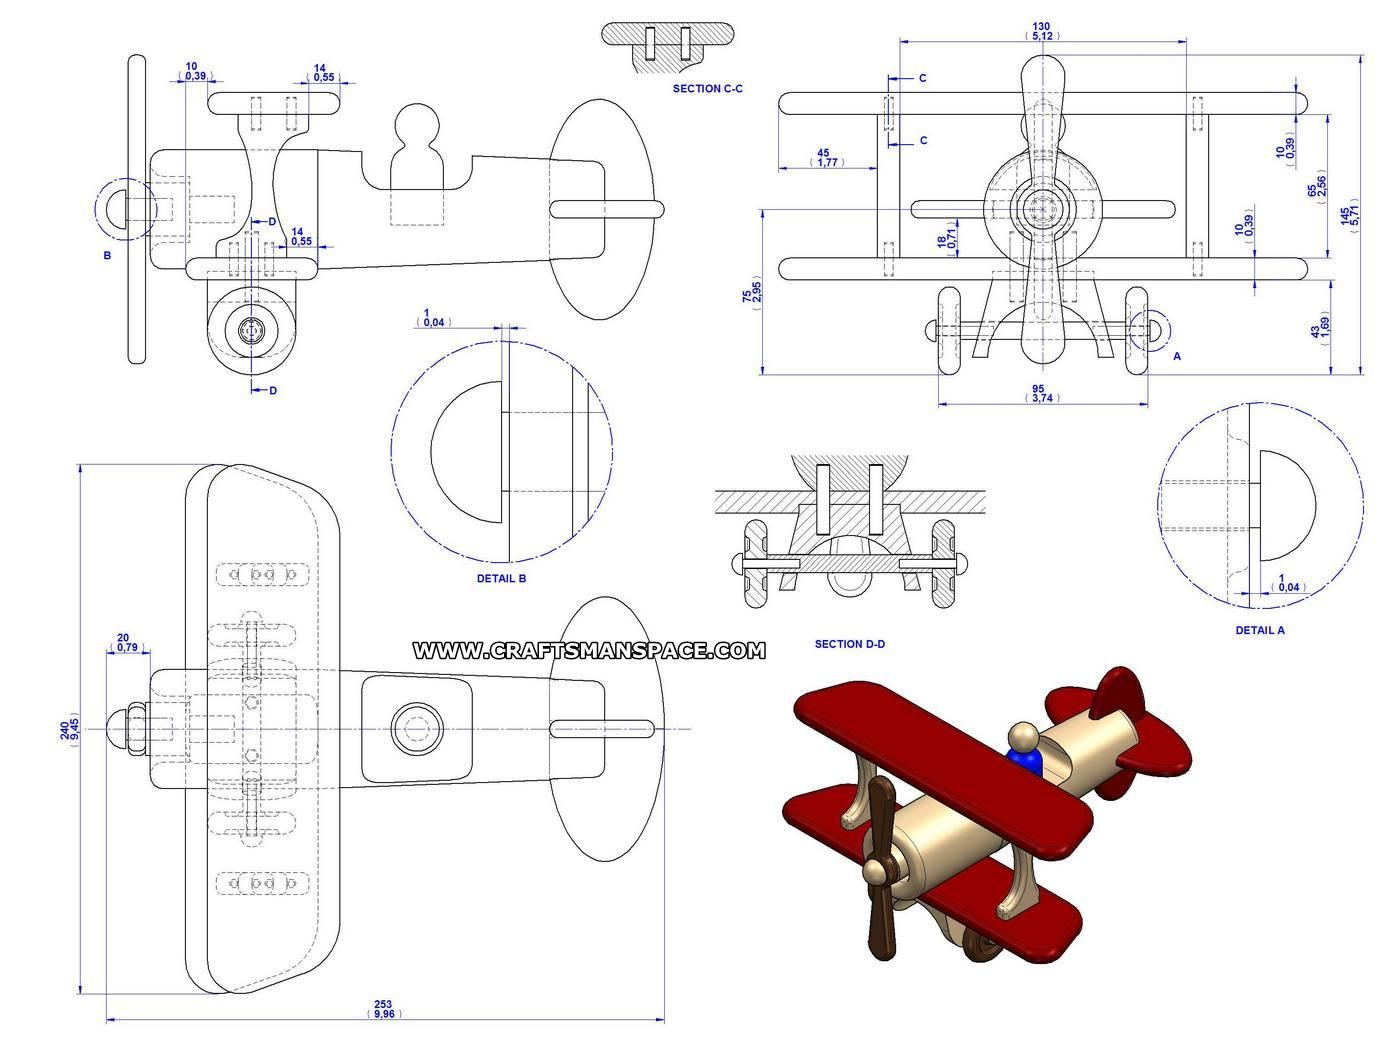 Wooden Toy Plans Free Pdf | Discover Woodworking Projects | Train - Free Wooden Toy Plans Printable